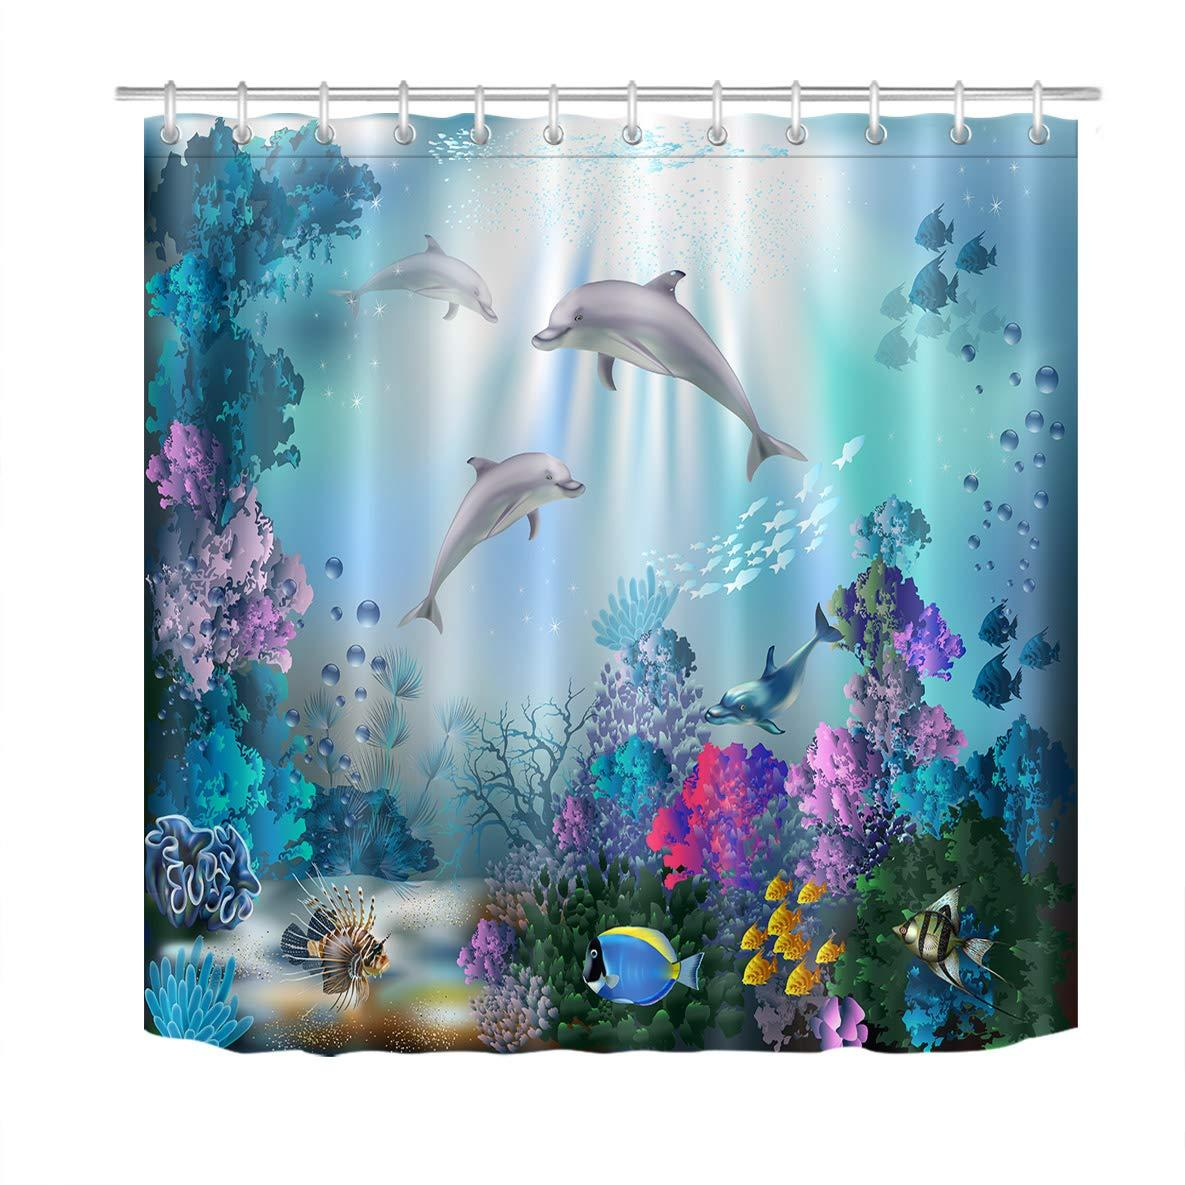 Bath Shower Curtains Kid Bathtub Decor Blue Ocean Undersea